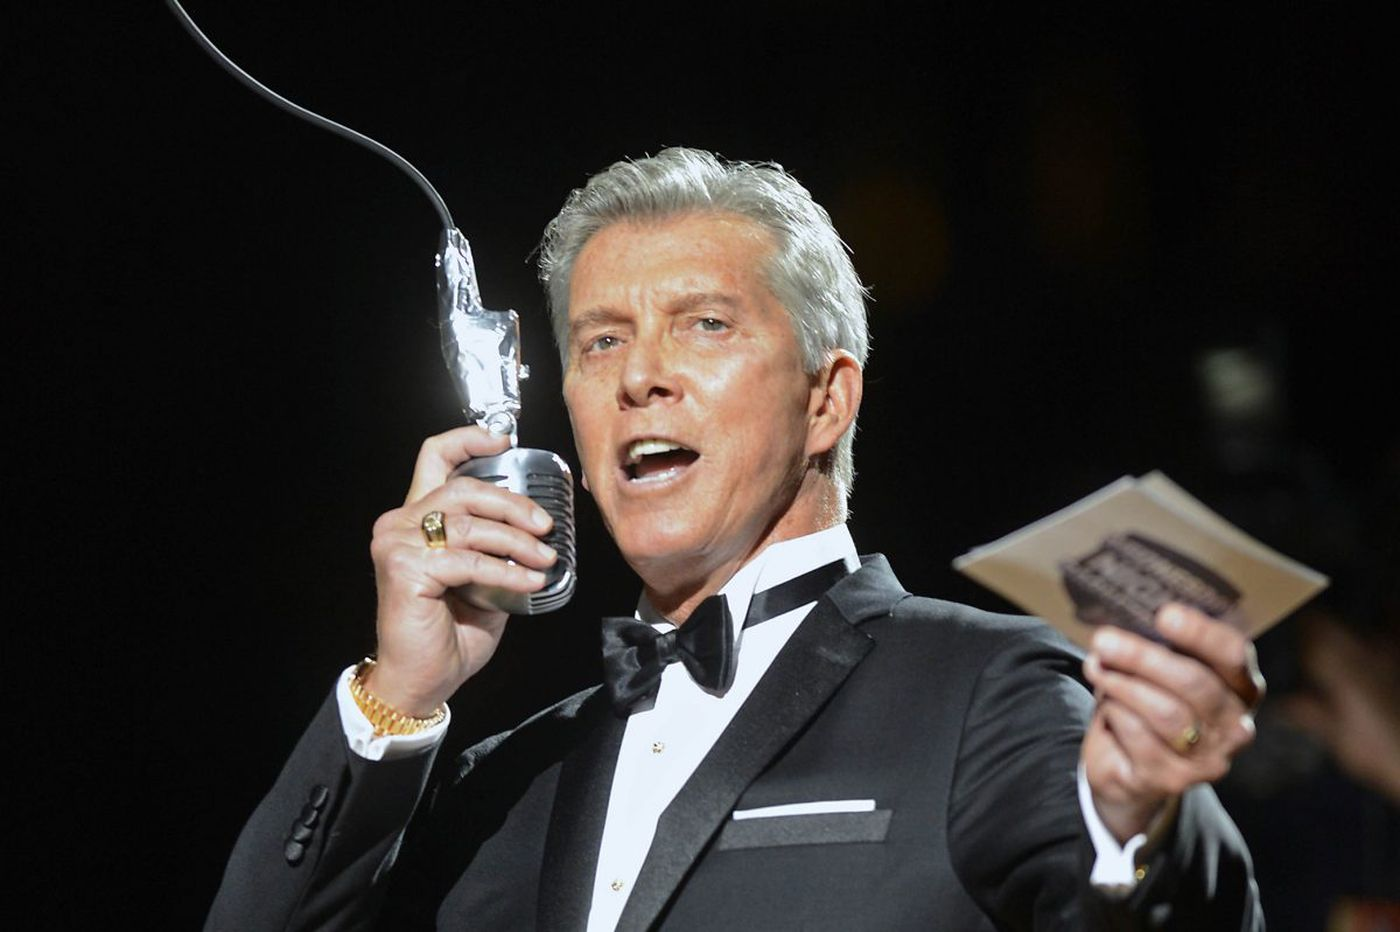 Michael Buffer joins Inquirer Live at Lunch, discusses Hall of Fame career as a ring announcer